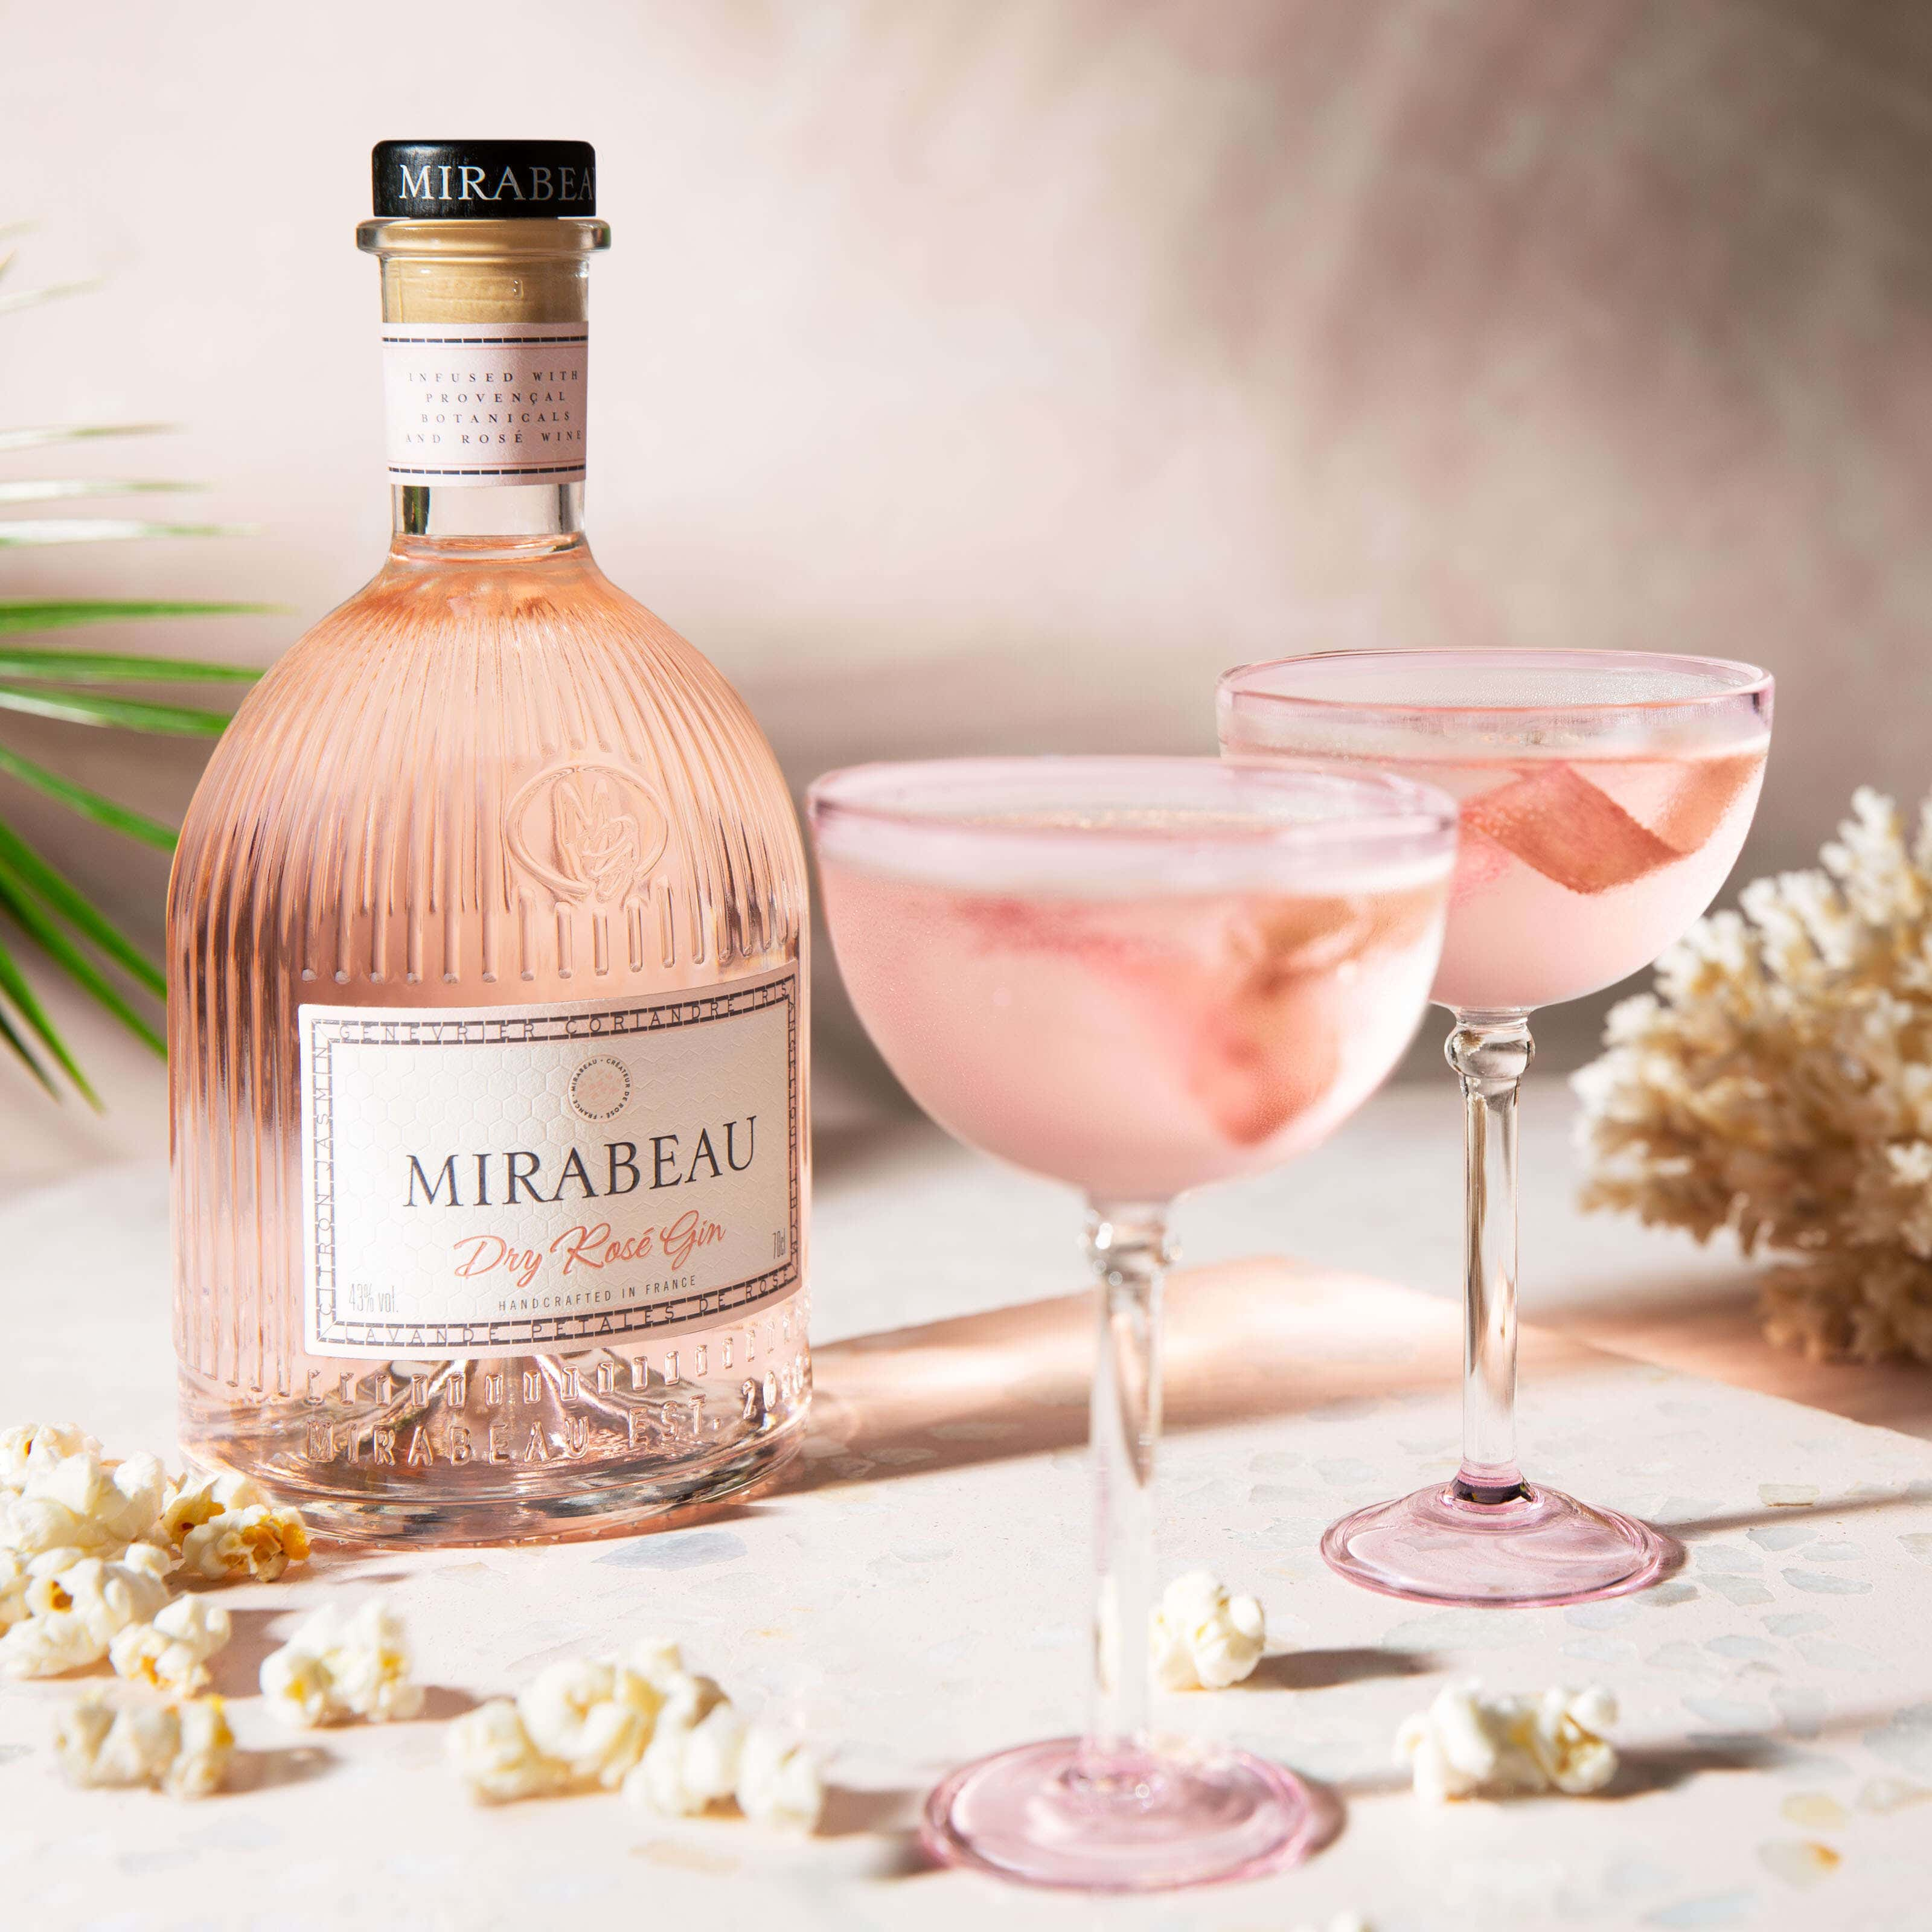 Mirabeau Gin with two cocktails and popcorn on the table with bright sunlight streaming through the images